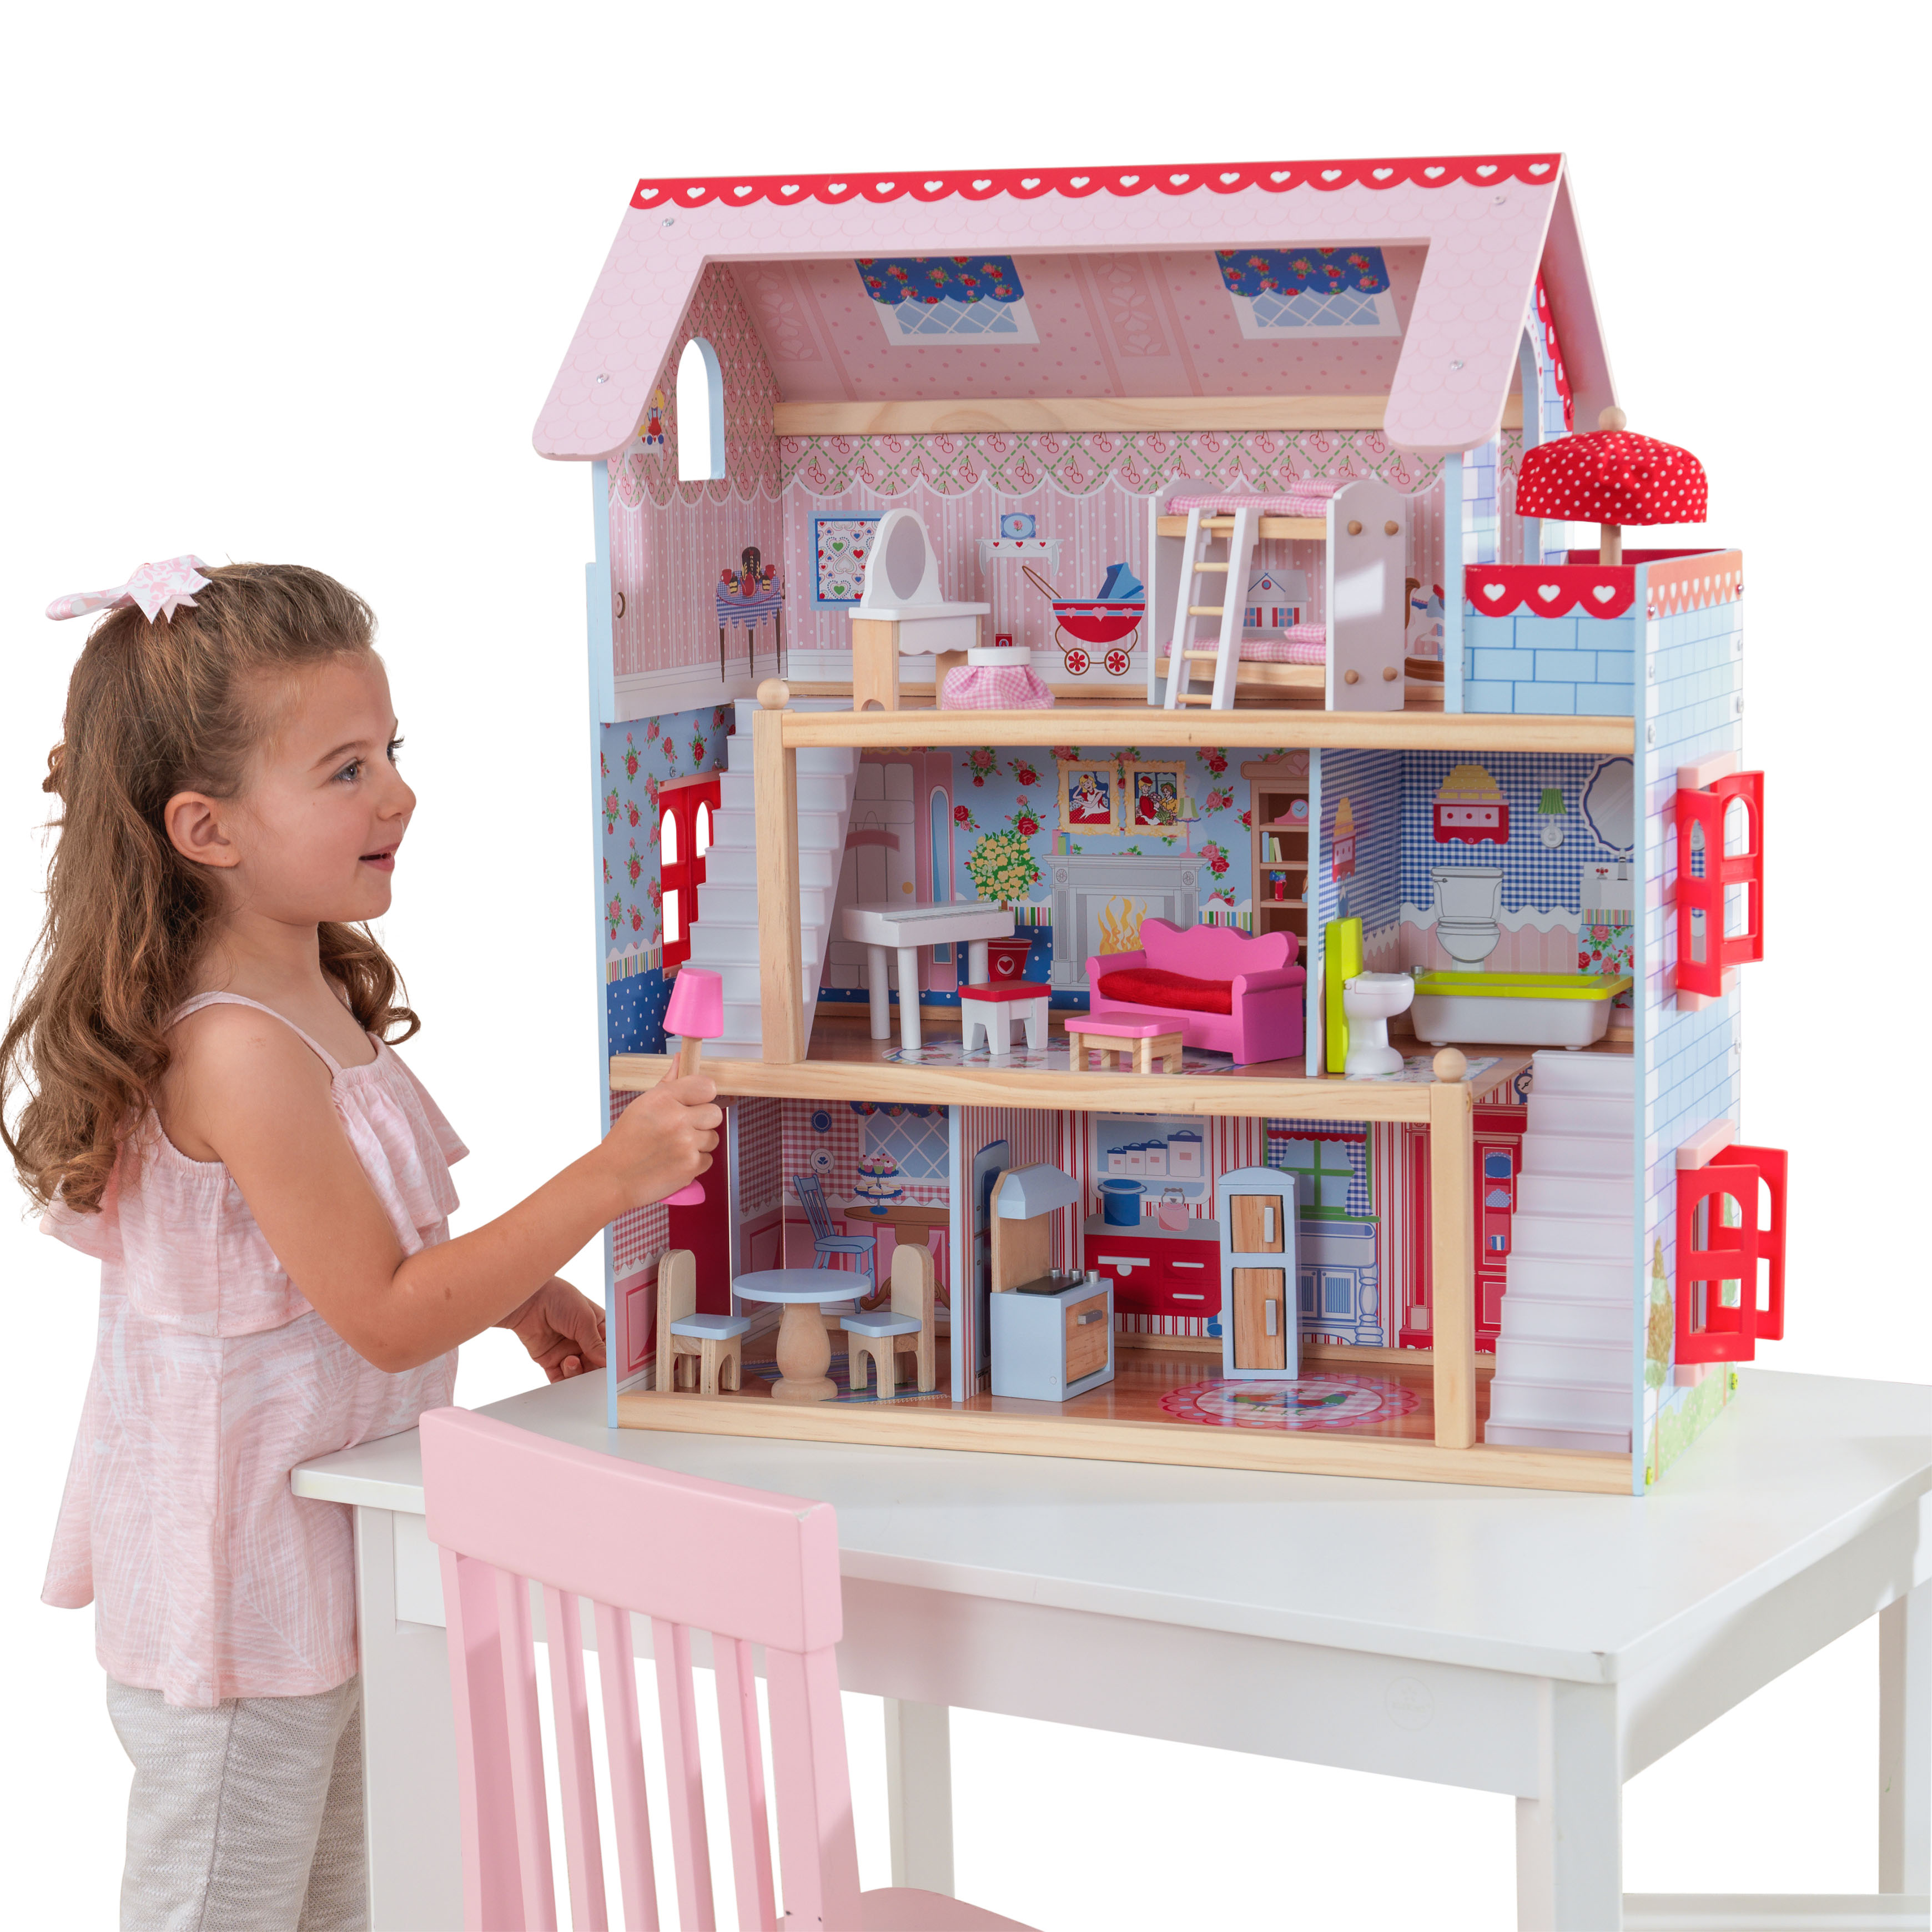 KidKraft Chelsea Doll Cottage with 16 accessories included by KidKraft